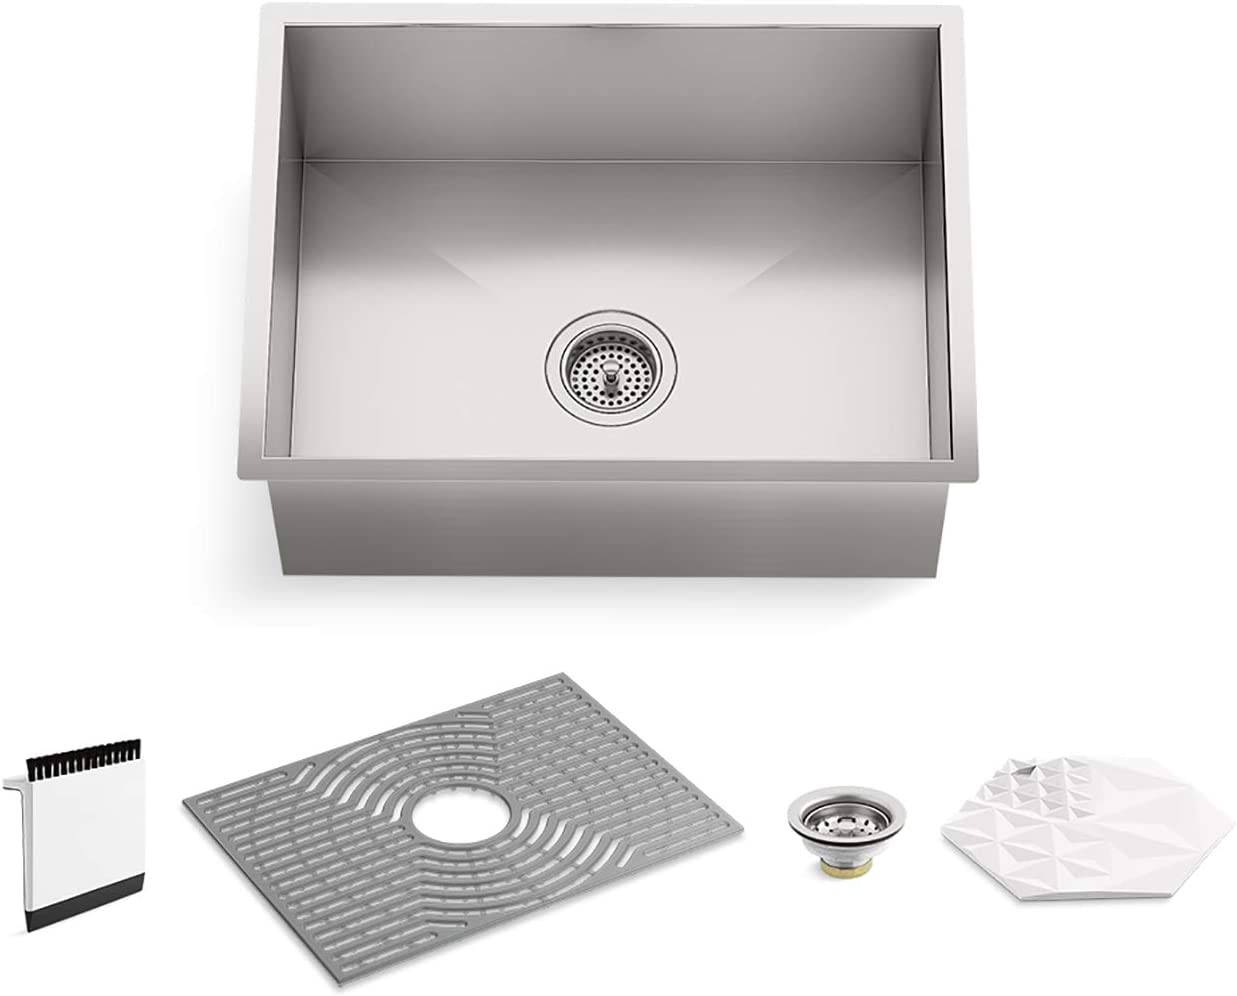 Kohler K-20023-PC-NA STERLING Ludington 24 Under-Mount Single-Bowl Kitchen Sink with Accessories, Medium Basin, Stainless Steel